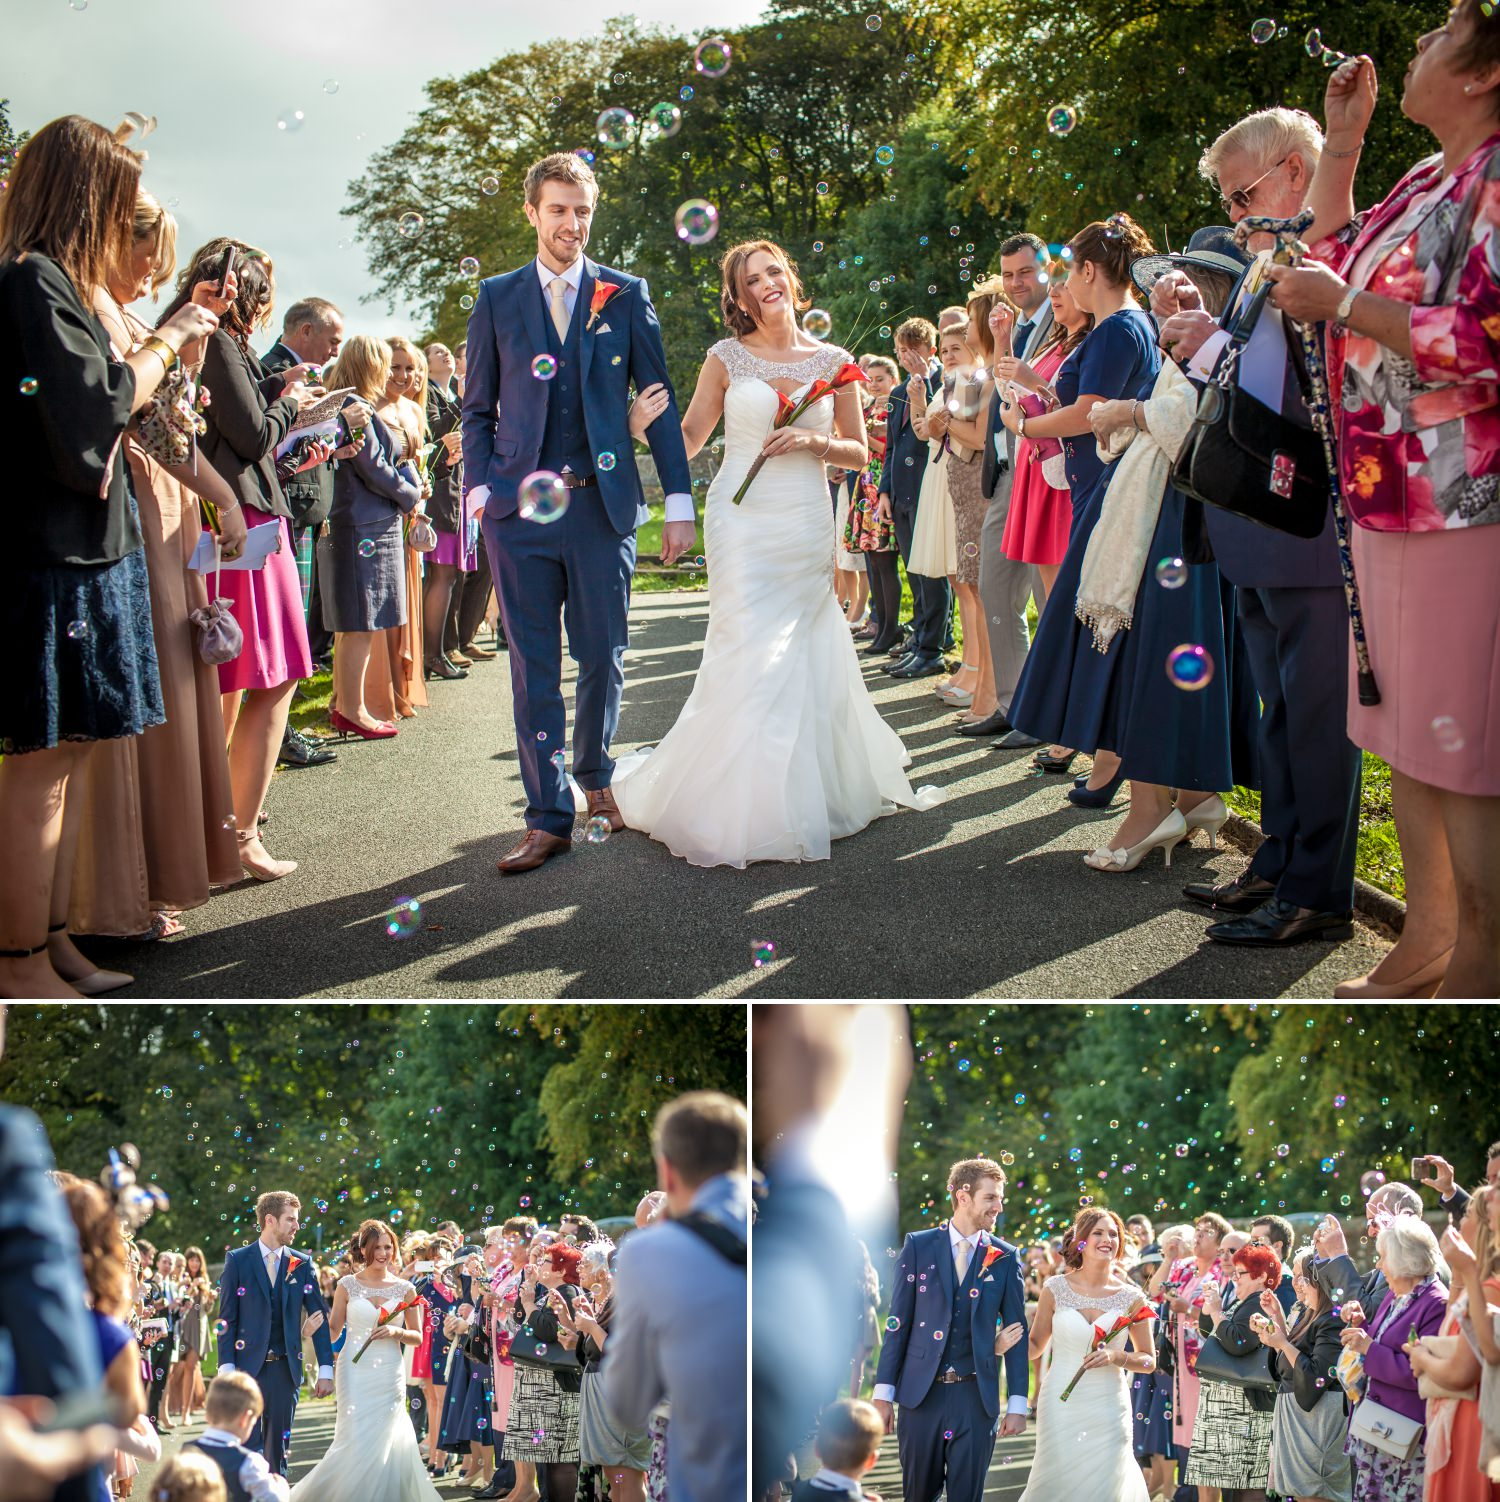 Wedding Photography of bubble confetti at the wedding ceremony North Wales